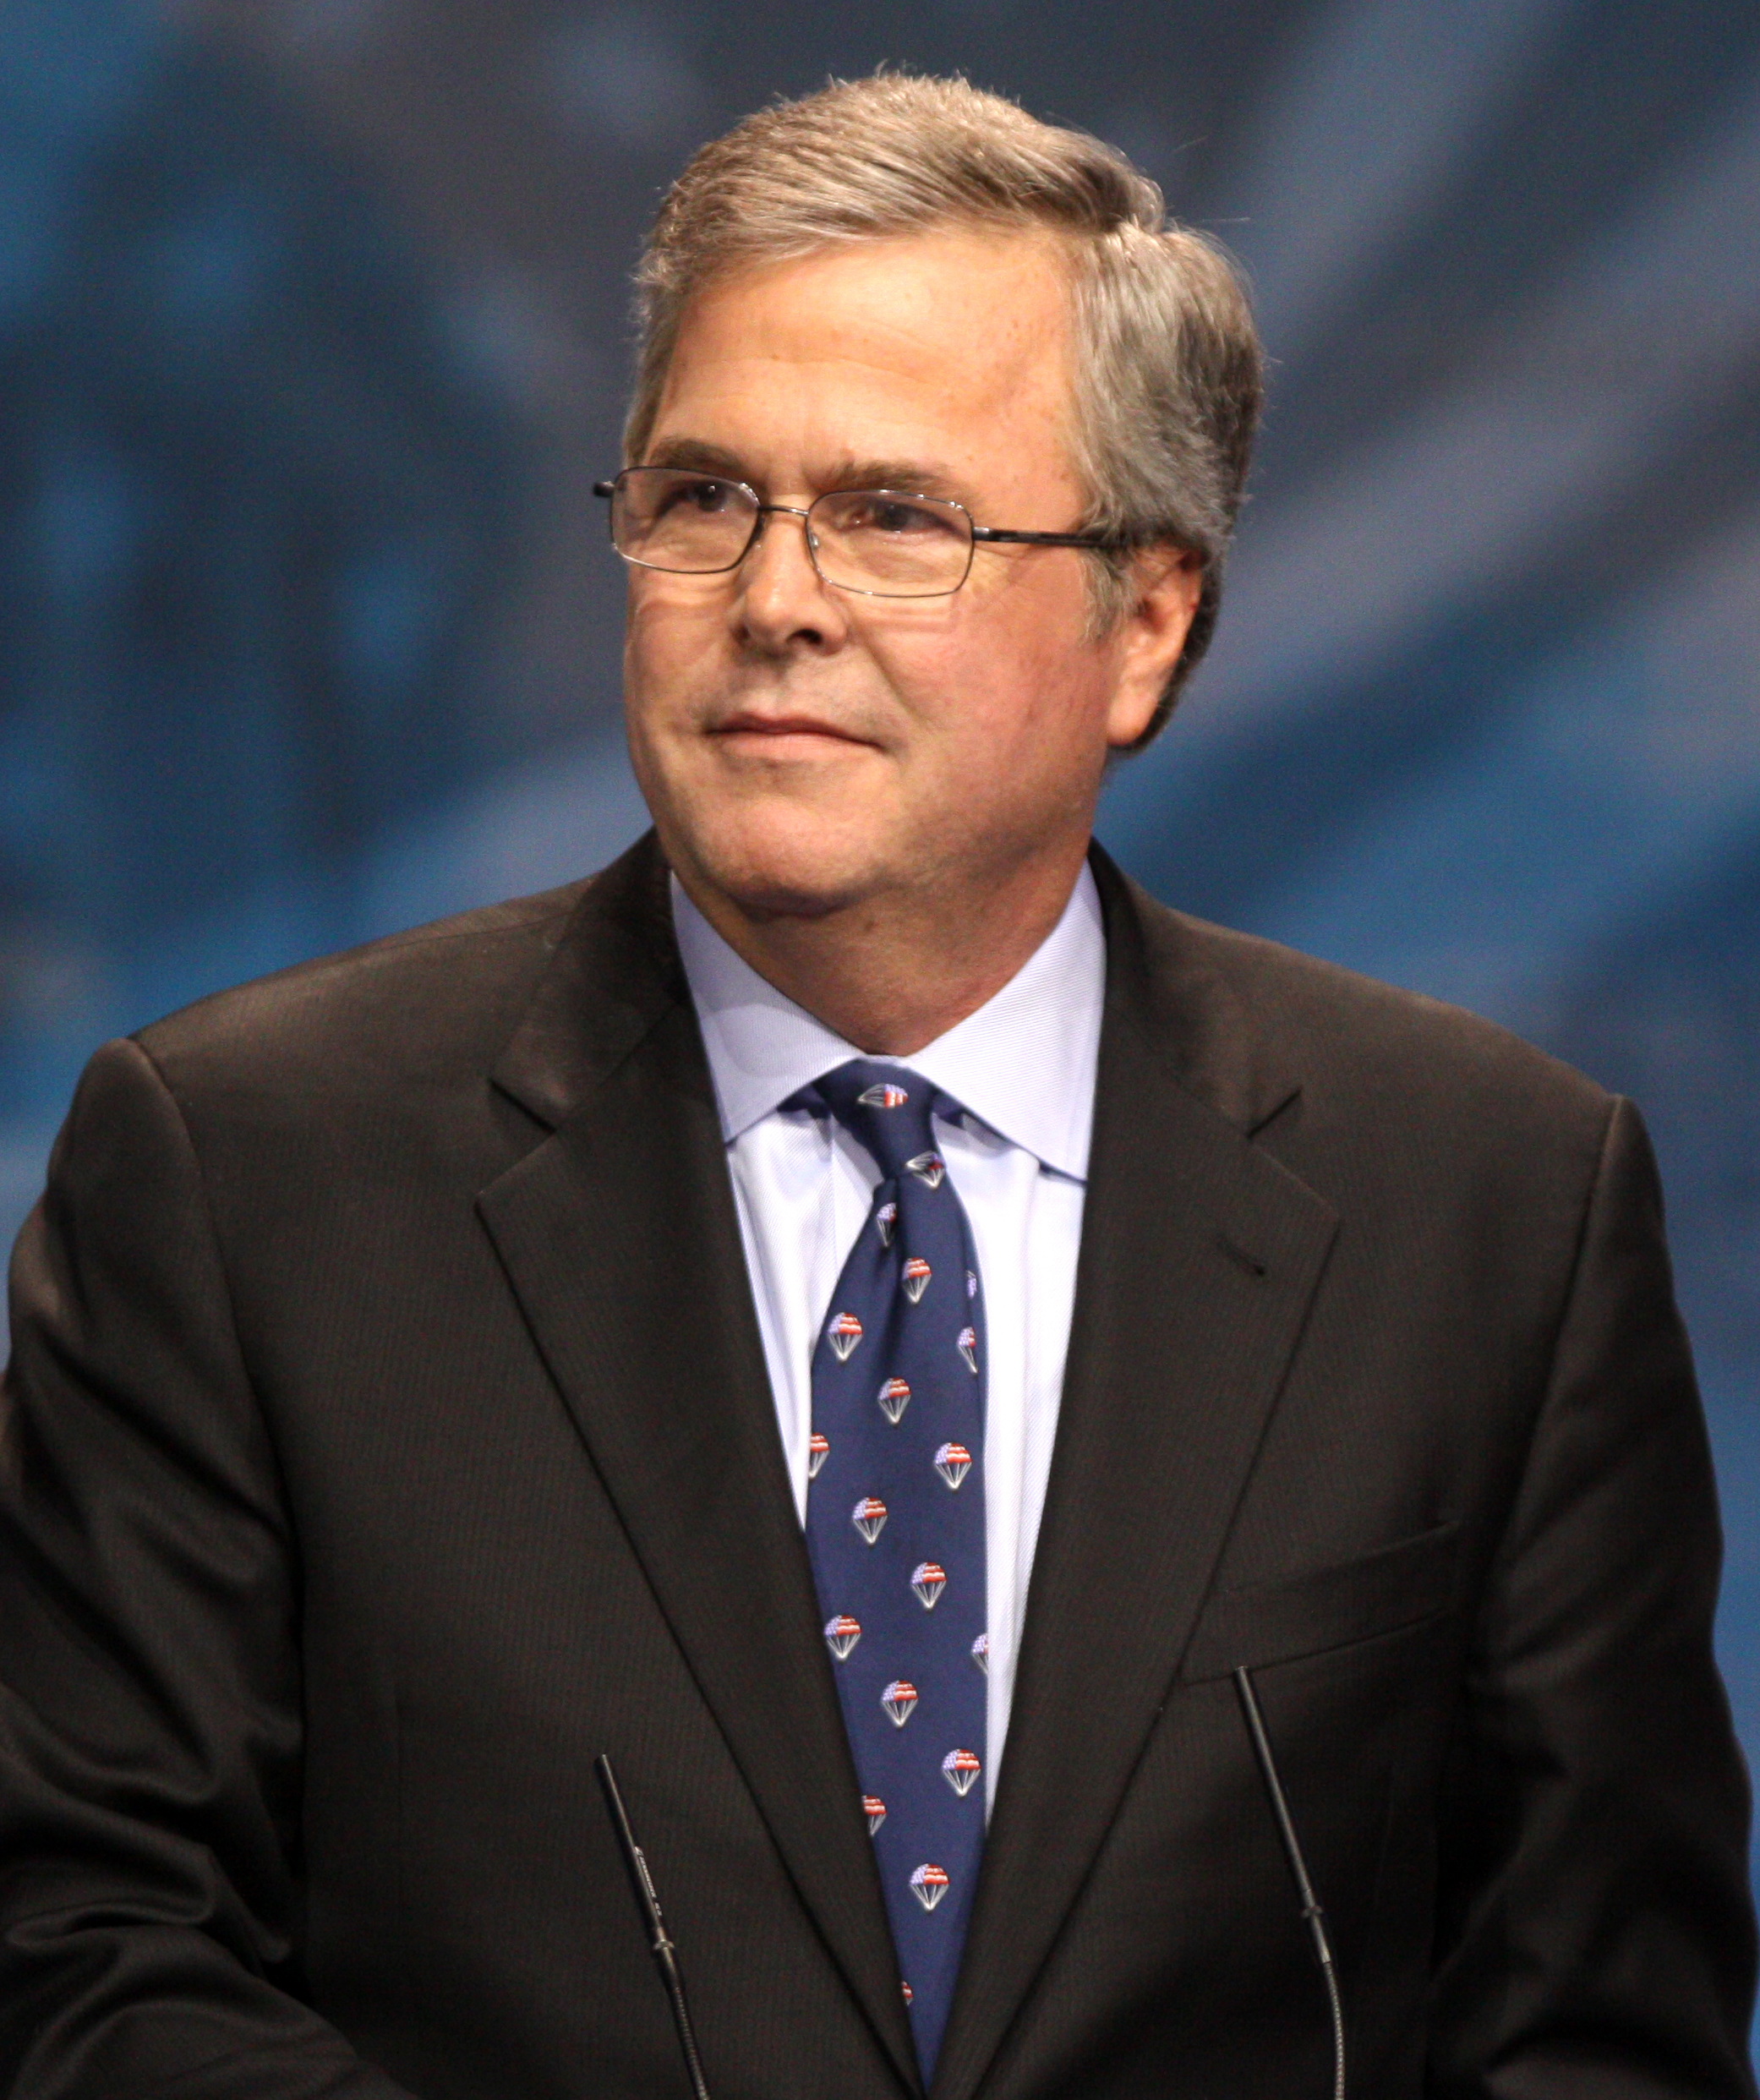 Jeb Bush - Simple English Wikipedia, the free encyclopedia